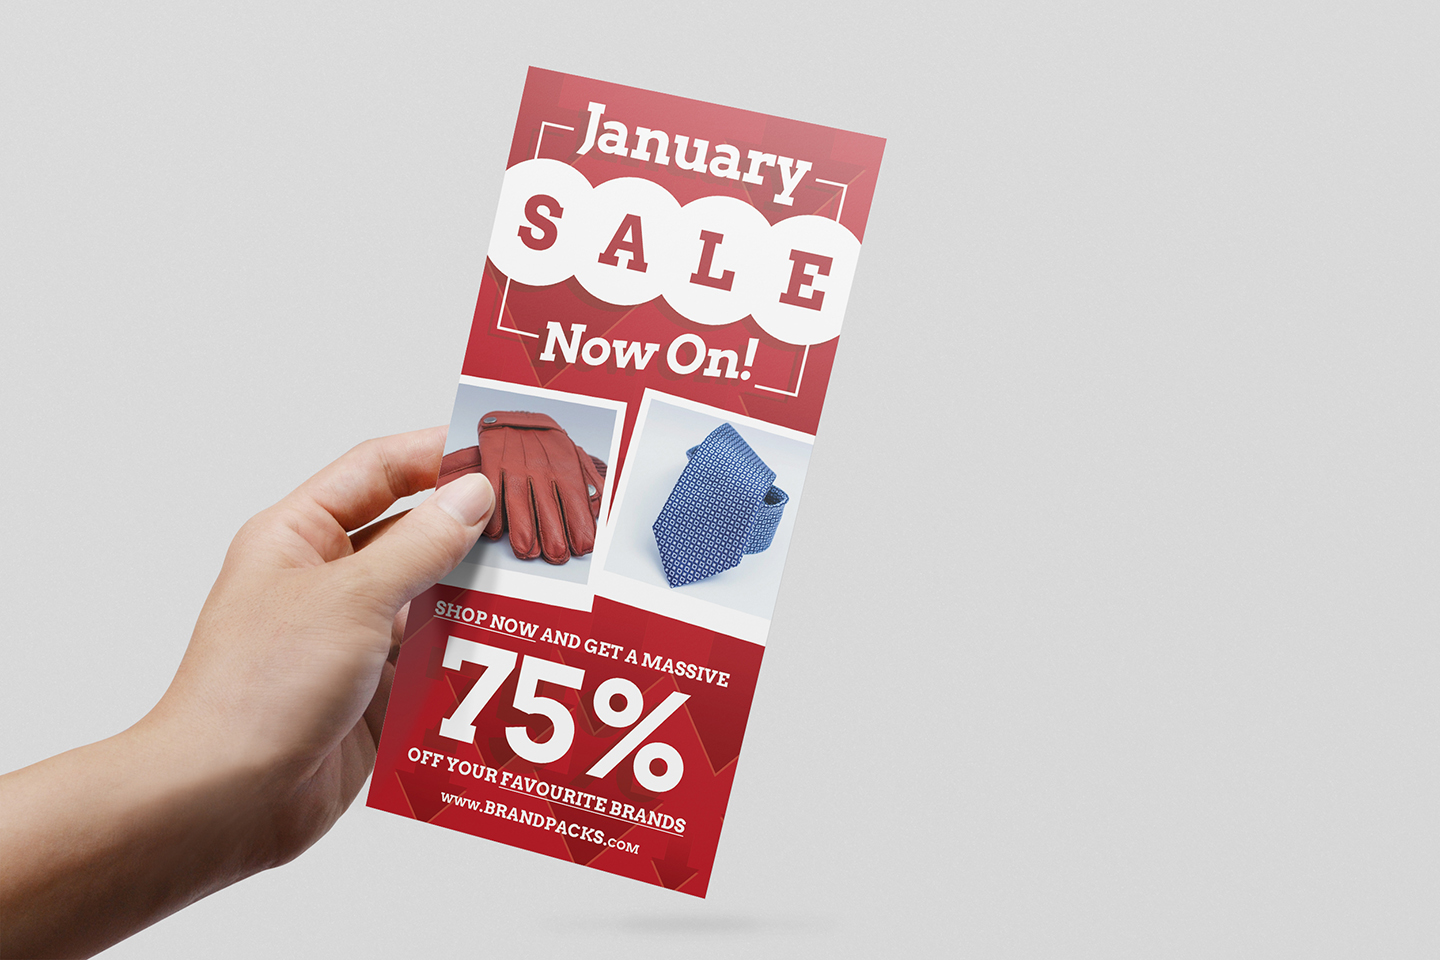 Free January Sale DL Card Template